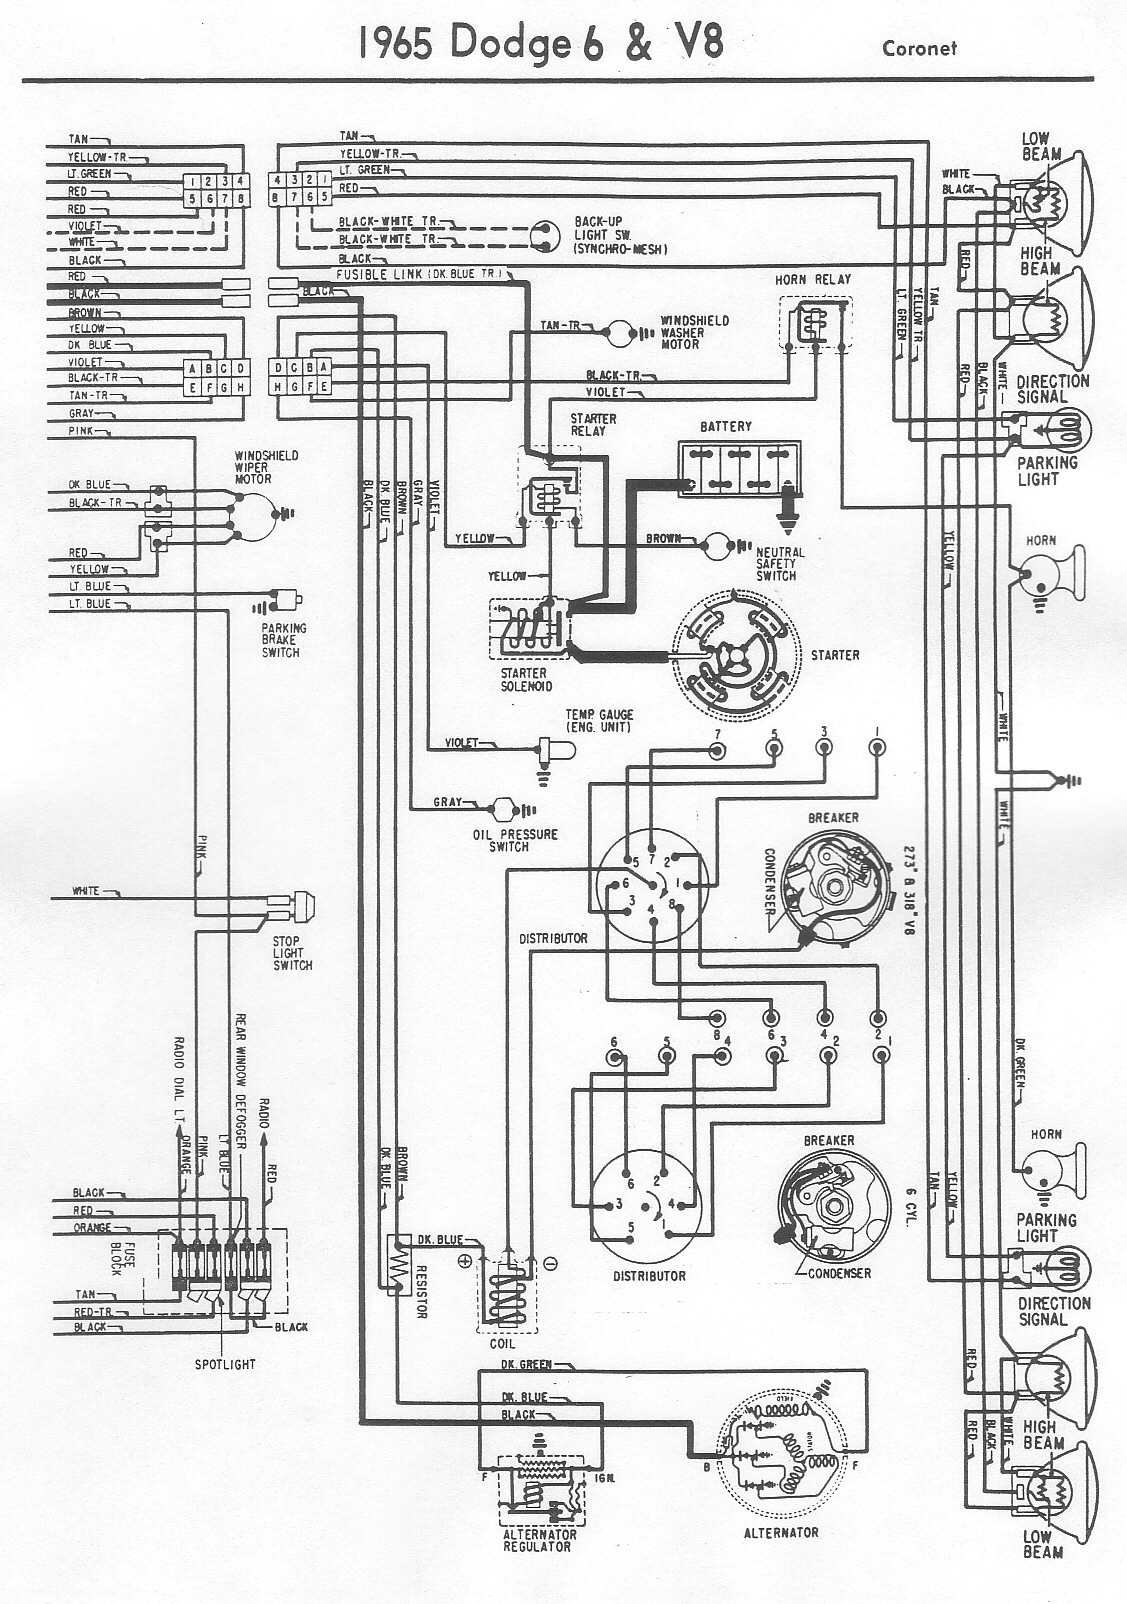 Wiring Diagram Vintage Dodge Coronet2 Bob S Garage Library